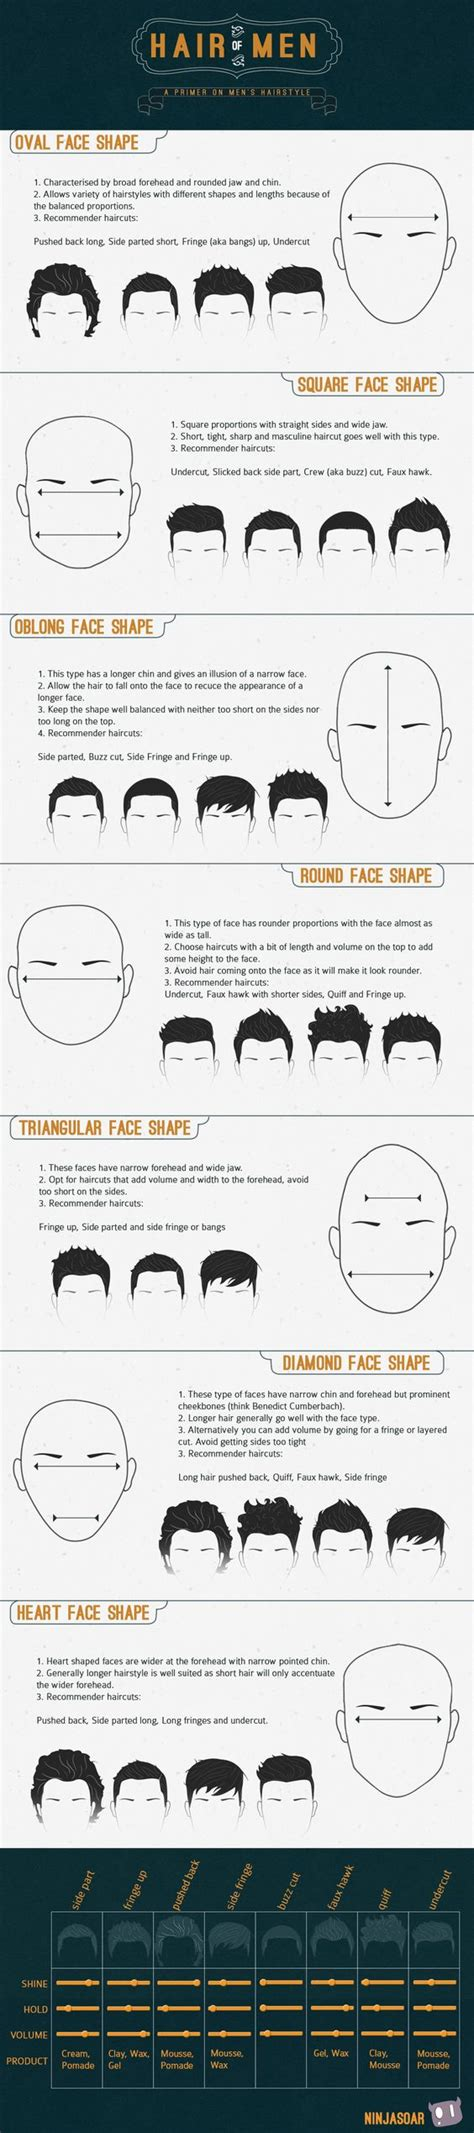 hairstyles for different faces hair of men men s hair styles to fit different